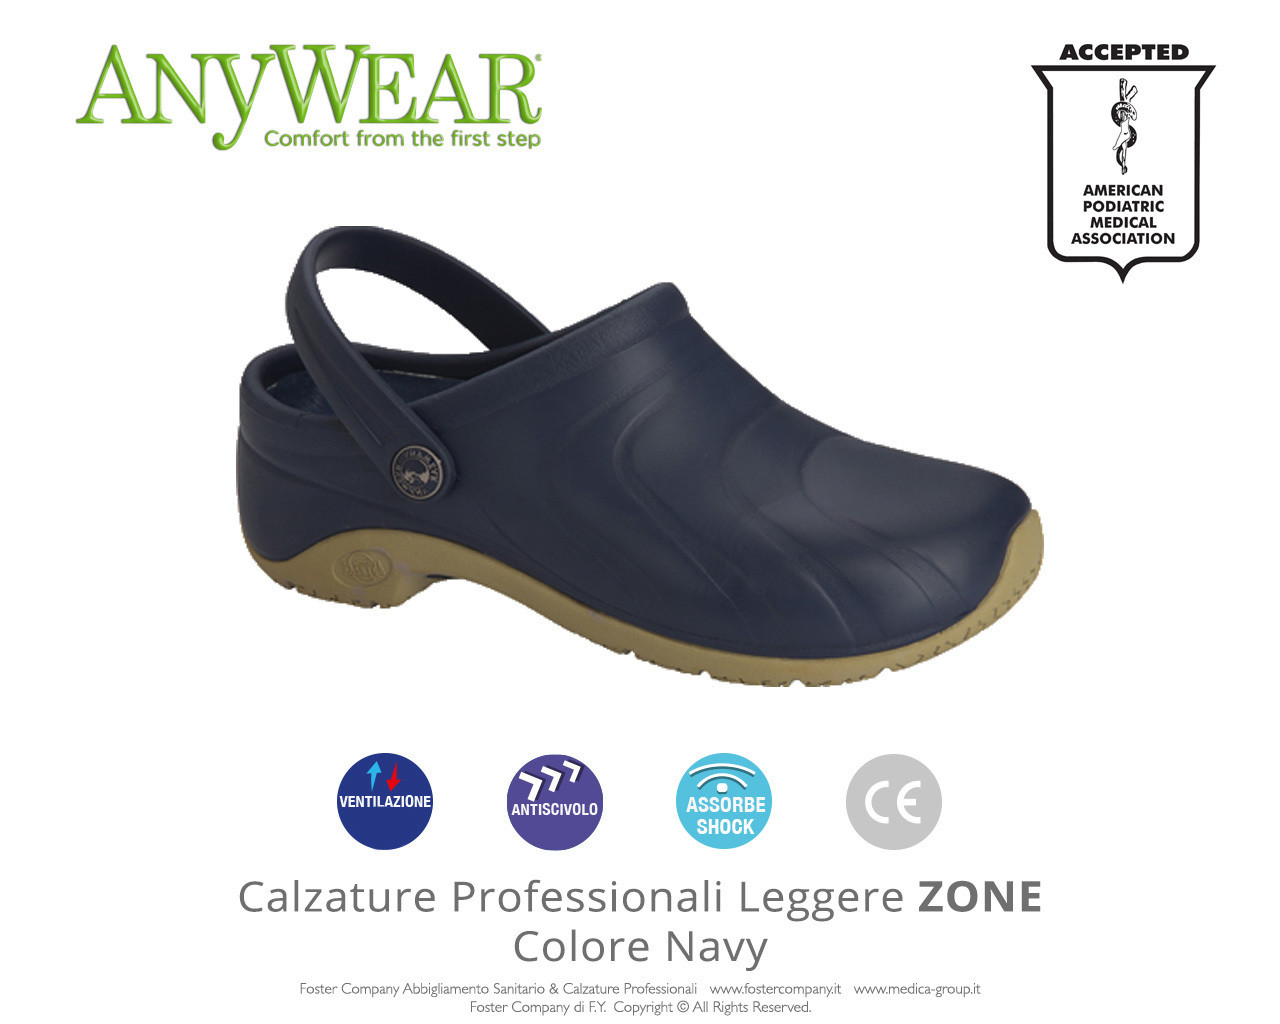 Calzature Professionali Anywear ZONE Colore Navy